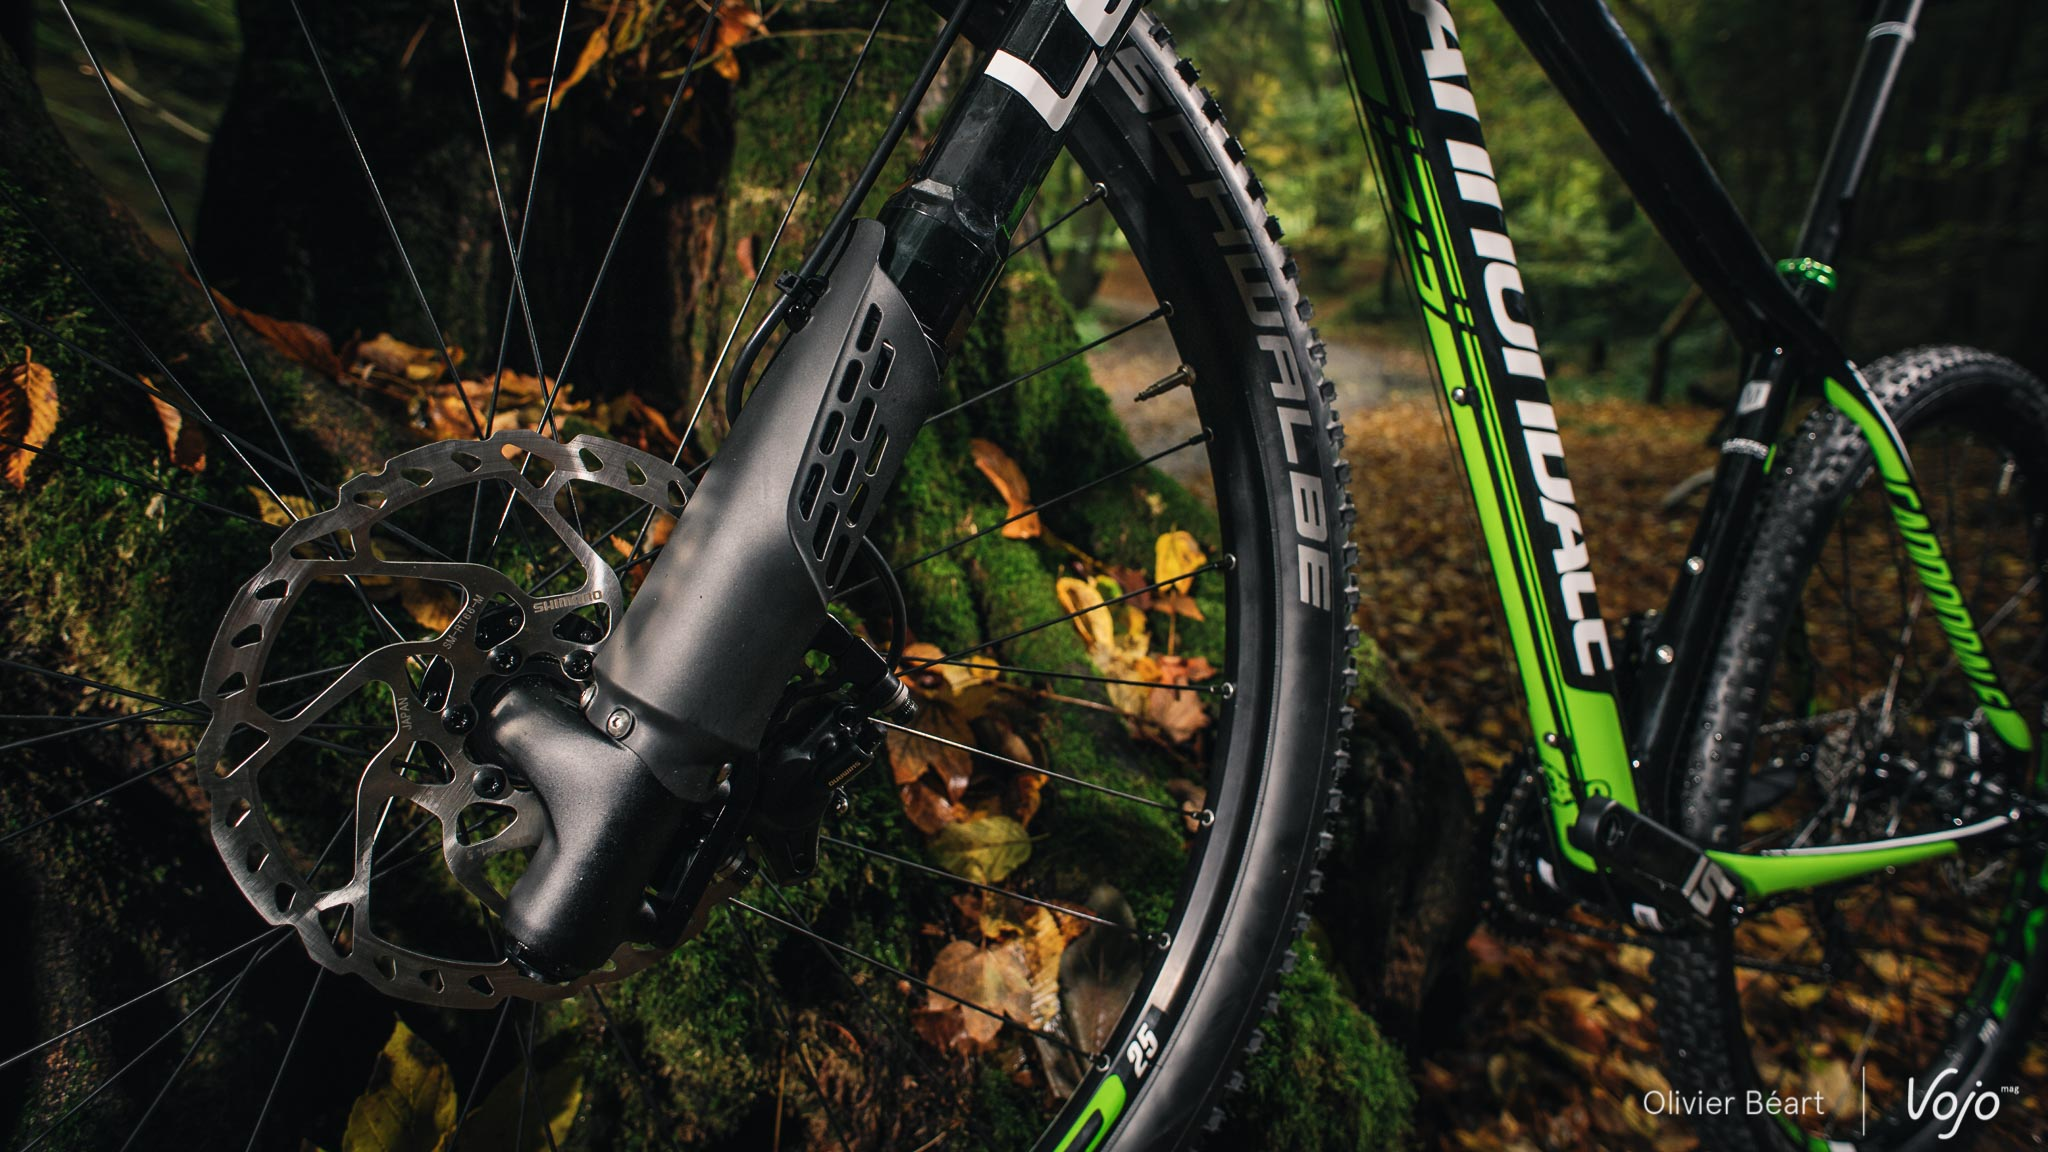 Cannondale_F-Si_Carbon_4_Test_Copyright_OBeart_VojoMag-1-5b